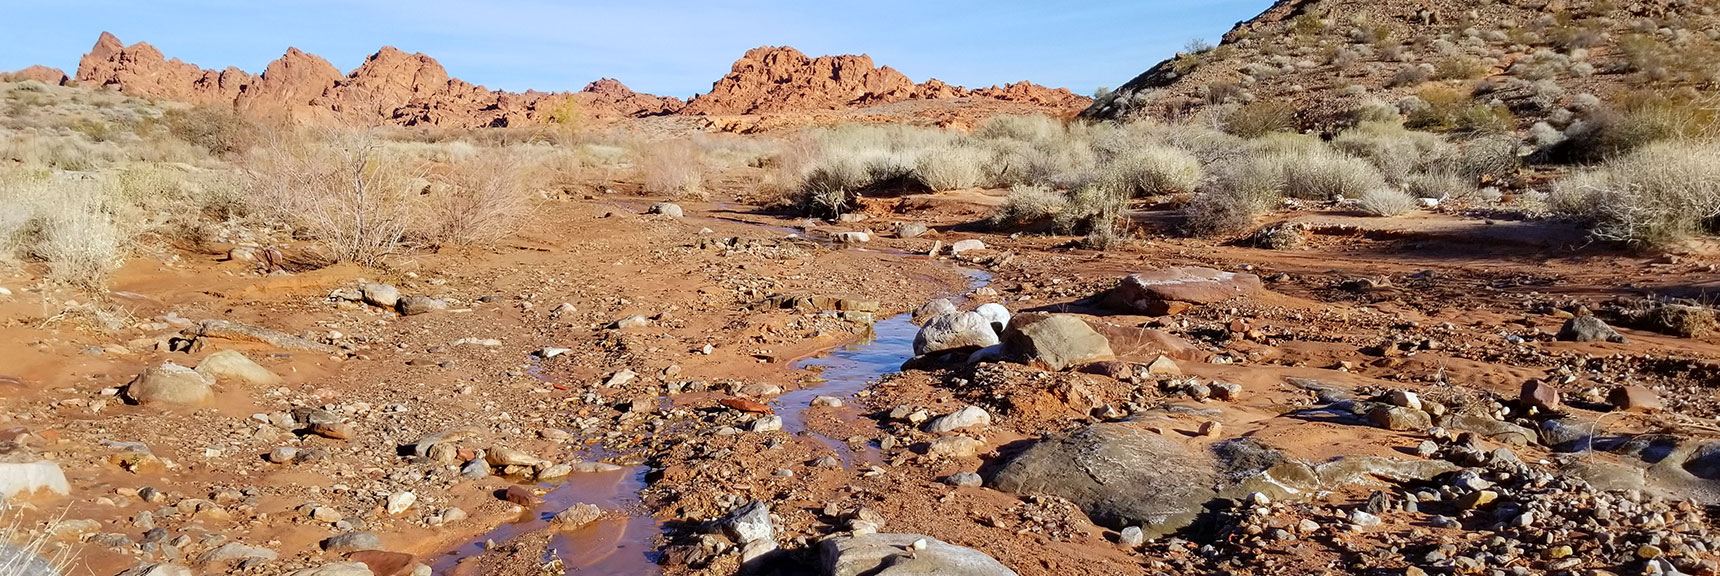 Stream Often Appears Then Disappears Into the Sand on Charlie's Spring Trail, Valley of Fire State Park, Nevada